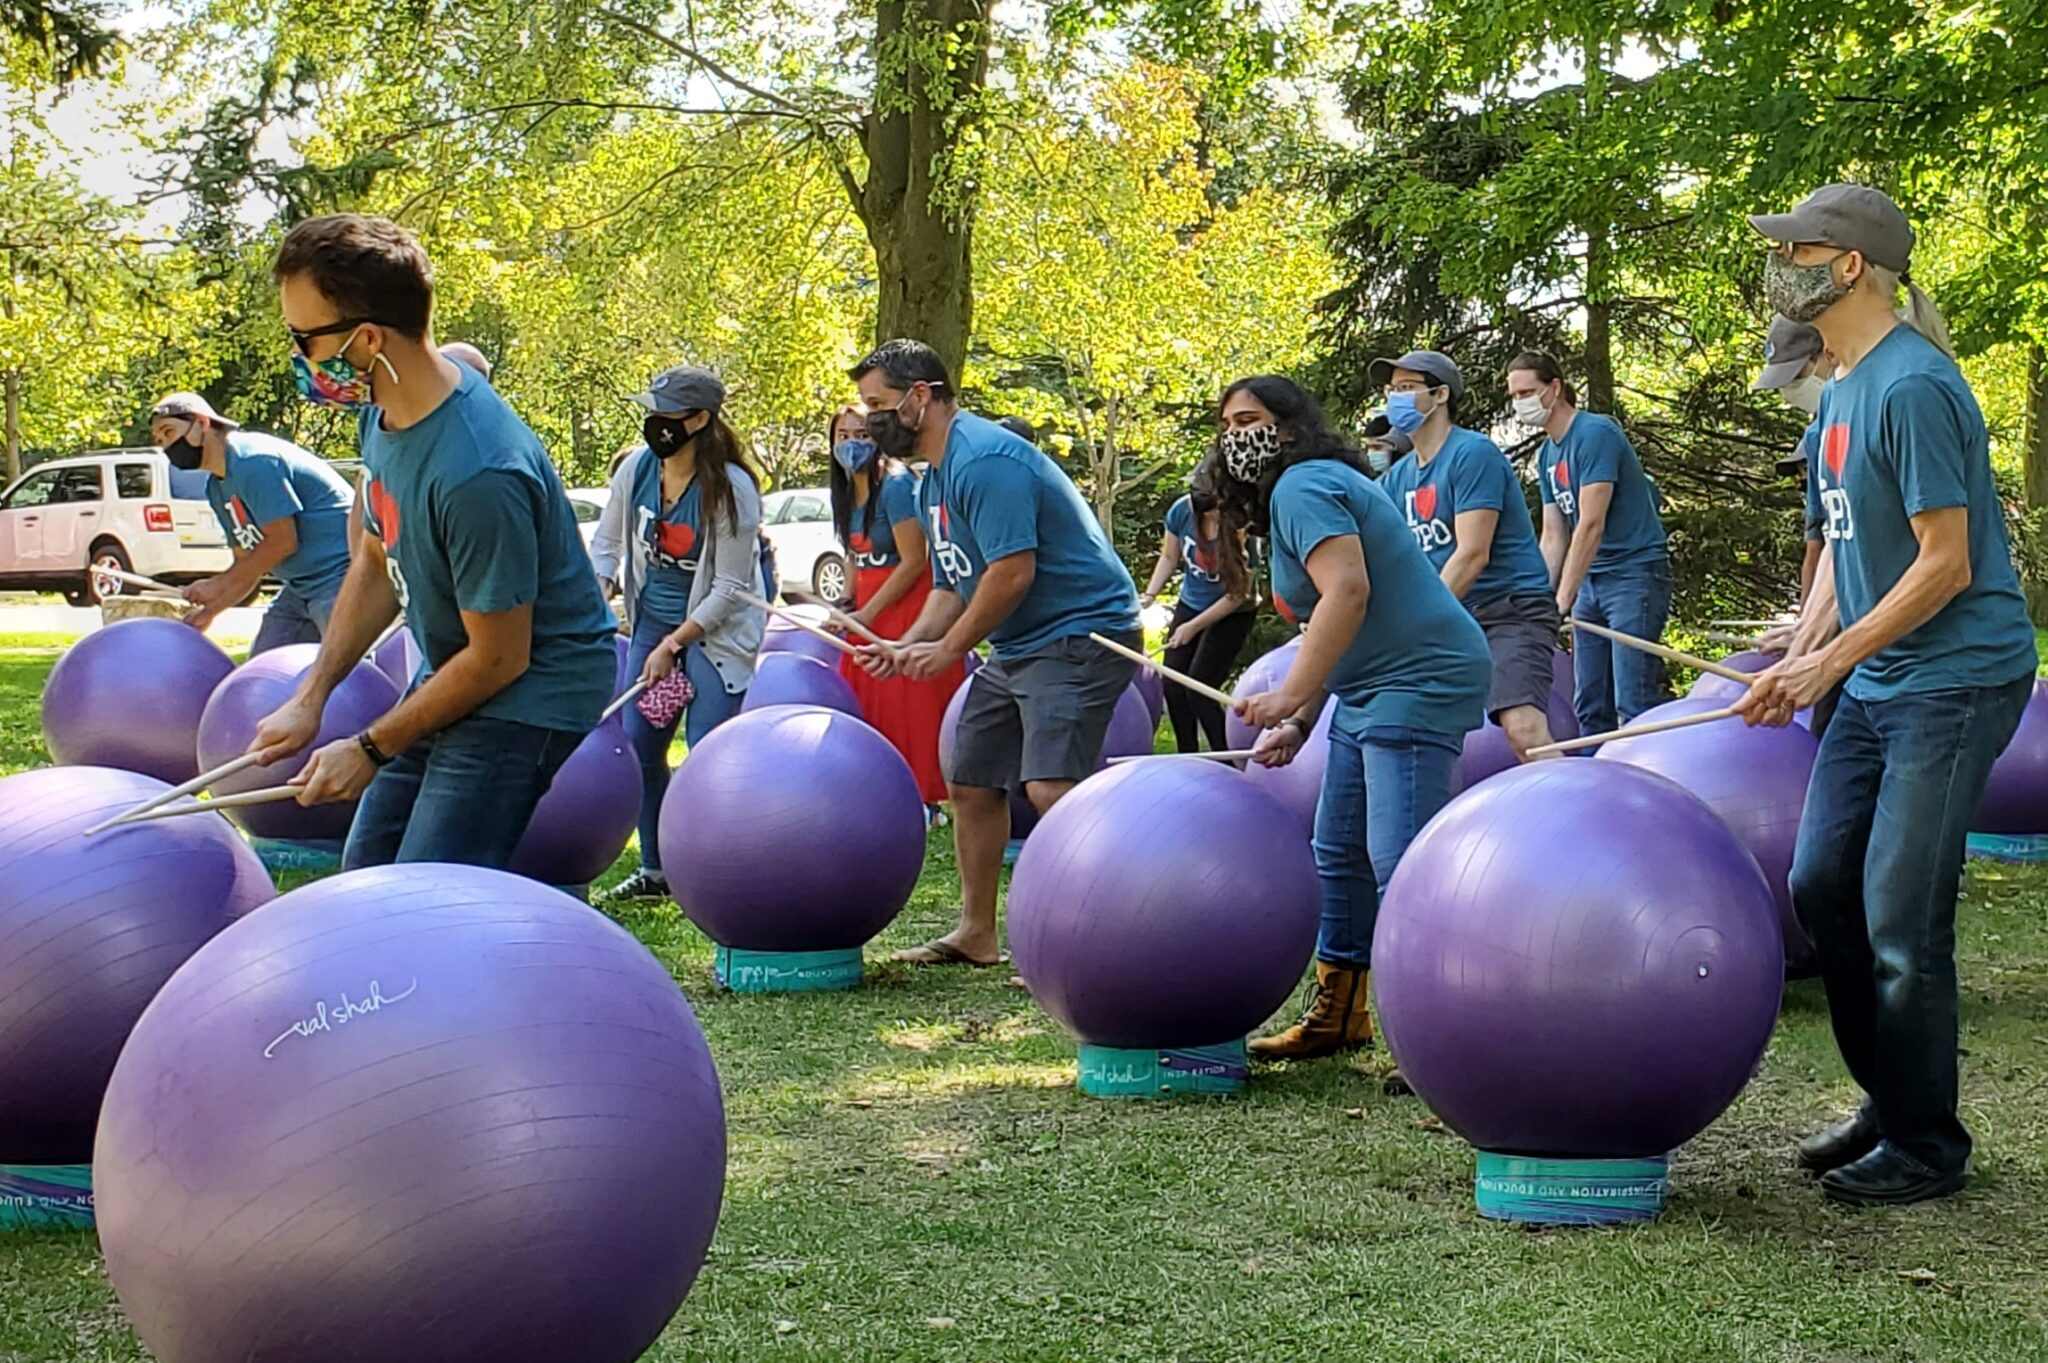 PPO playing drums on exercise balls